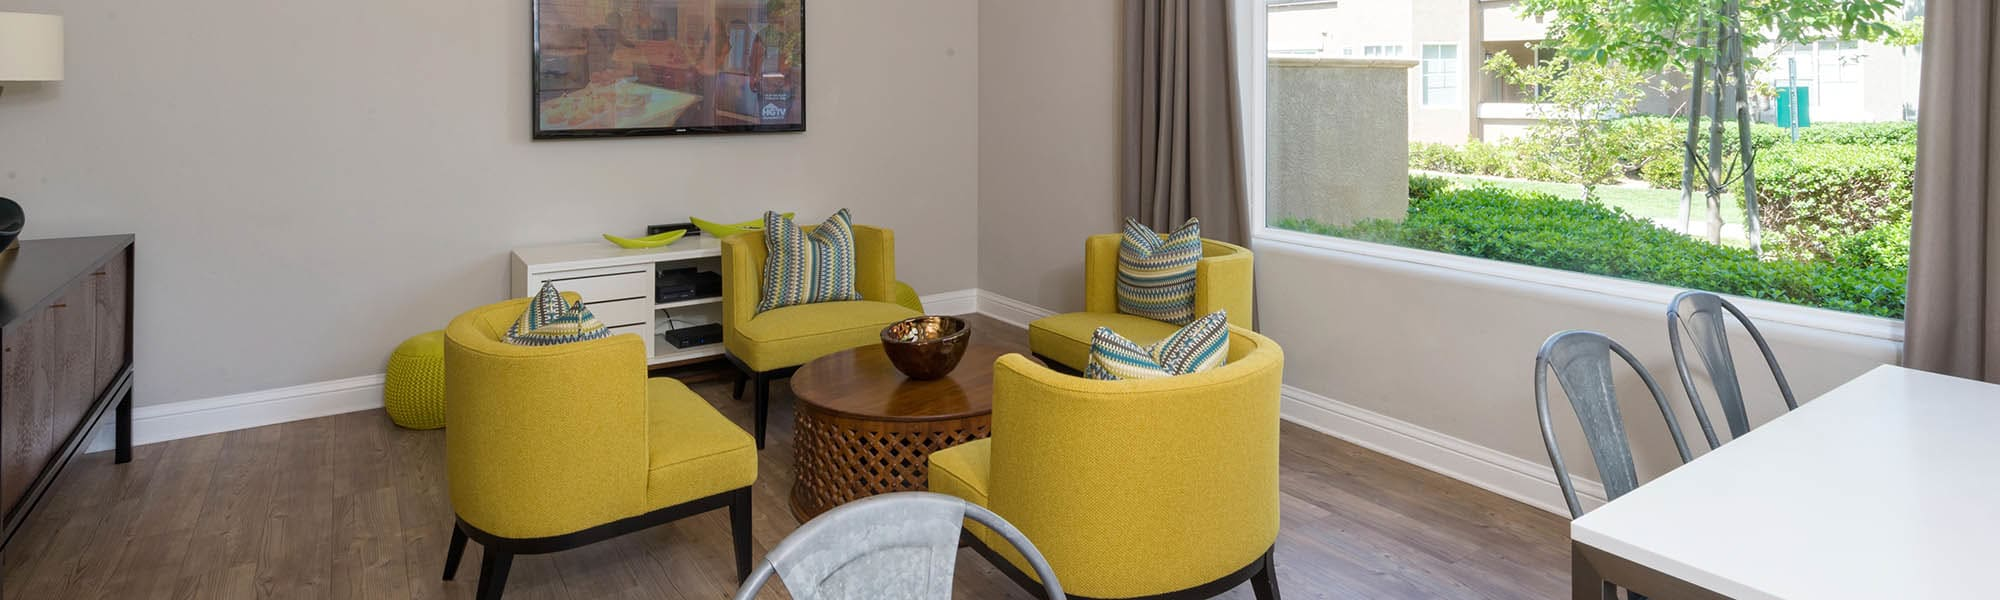 Read reviews of The Artisan Apartment Homes in Sacramento, California